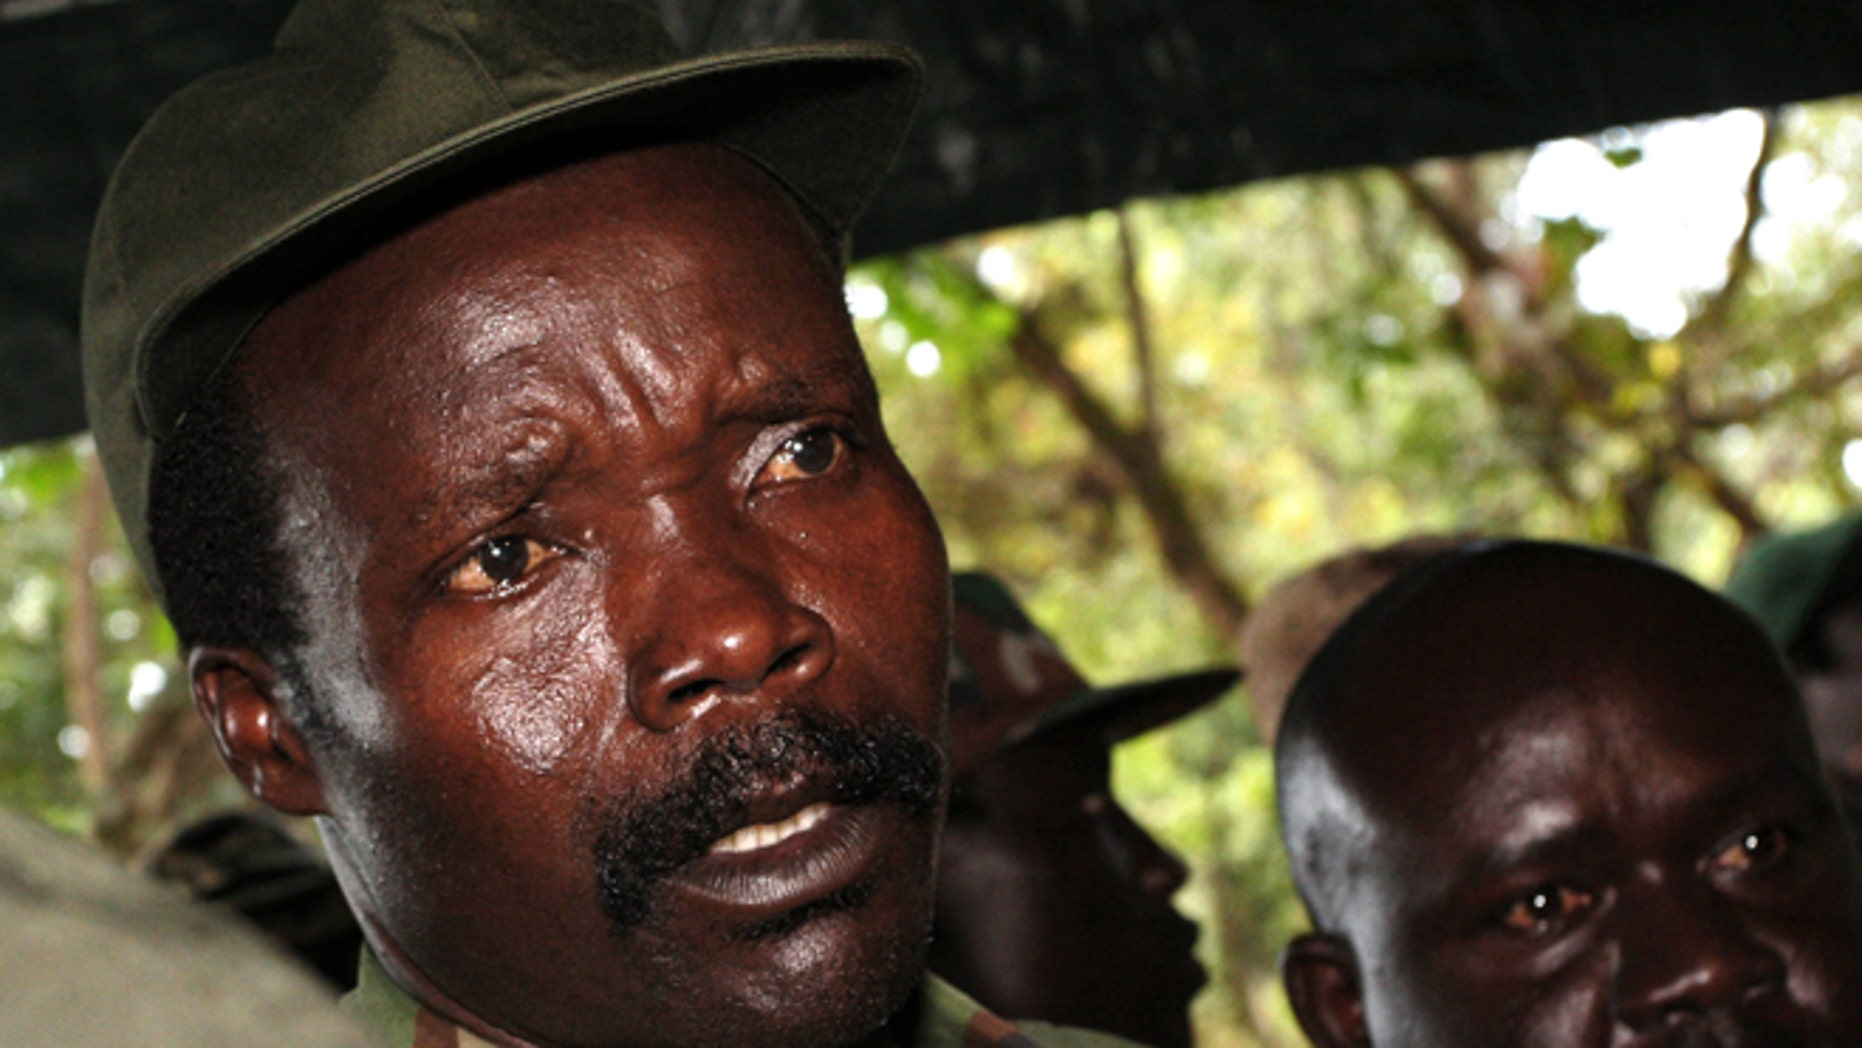 This Nov. 12, 2006 file photo shows the leader of the Lord's Resistance Army, Joseph Kony in southern Sudan.